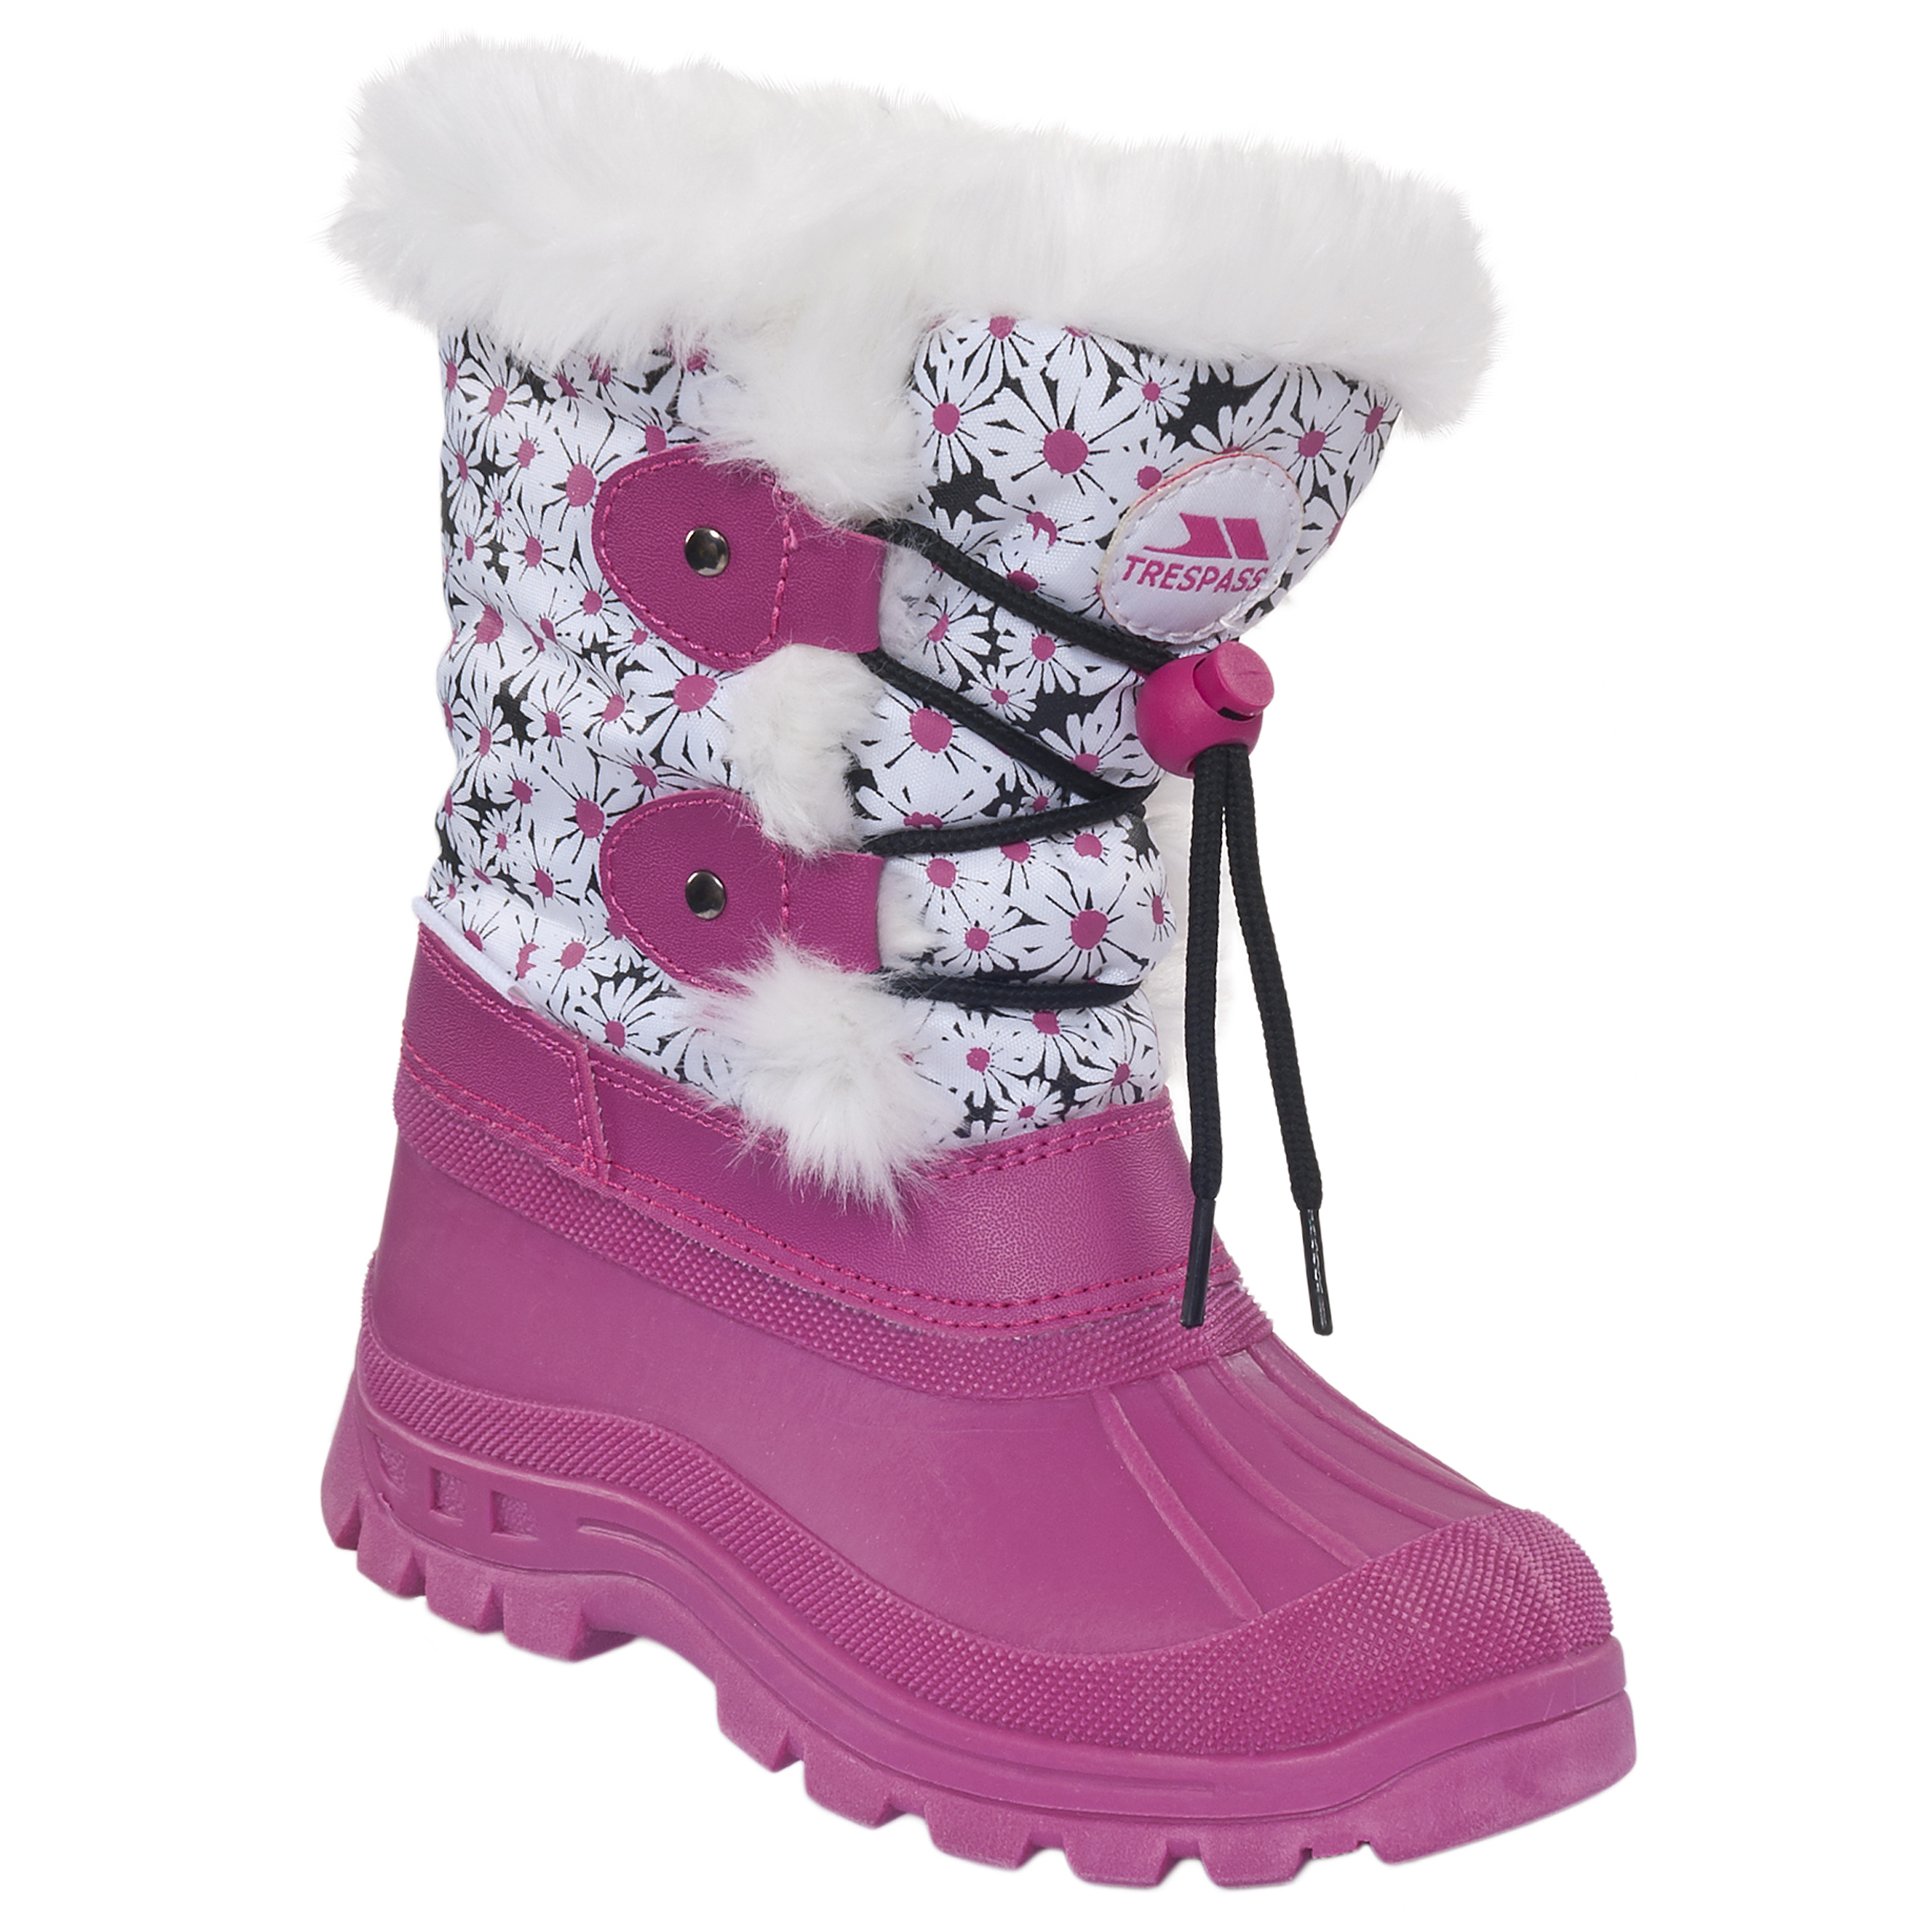 Trespass Snowdream Girls Kids Waterproof Winter Snow Boots | eBay